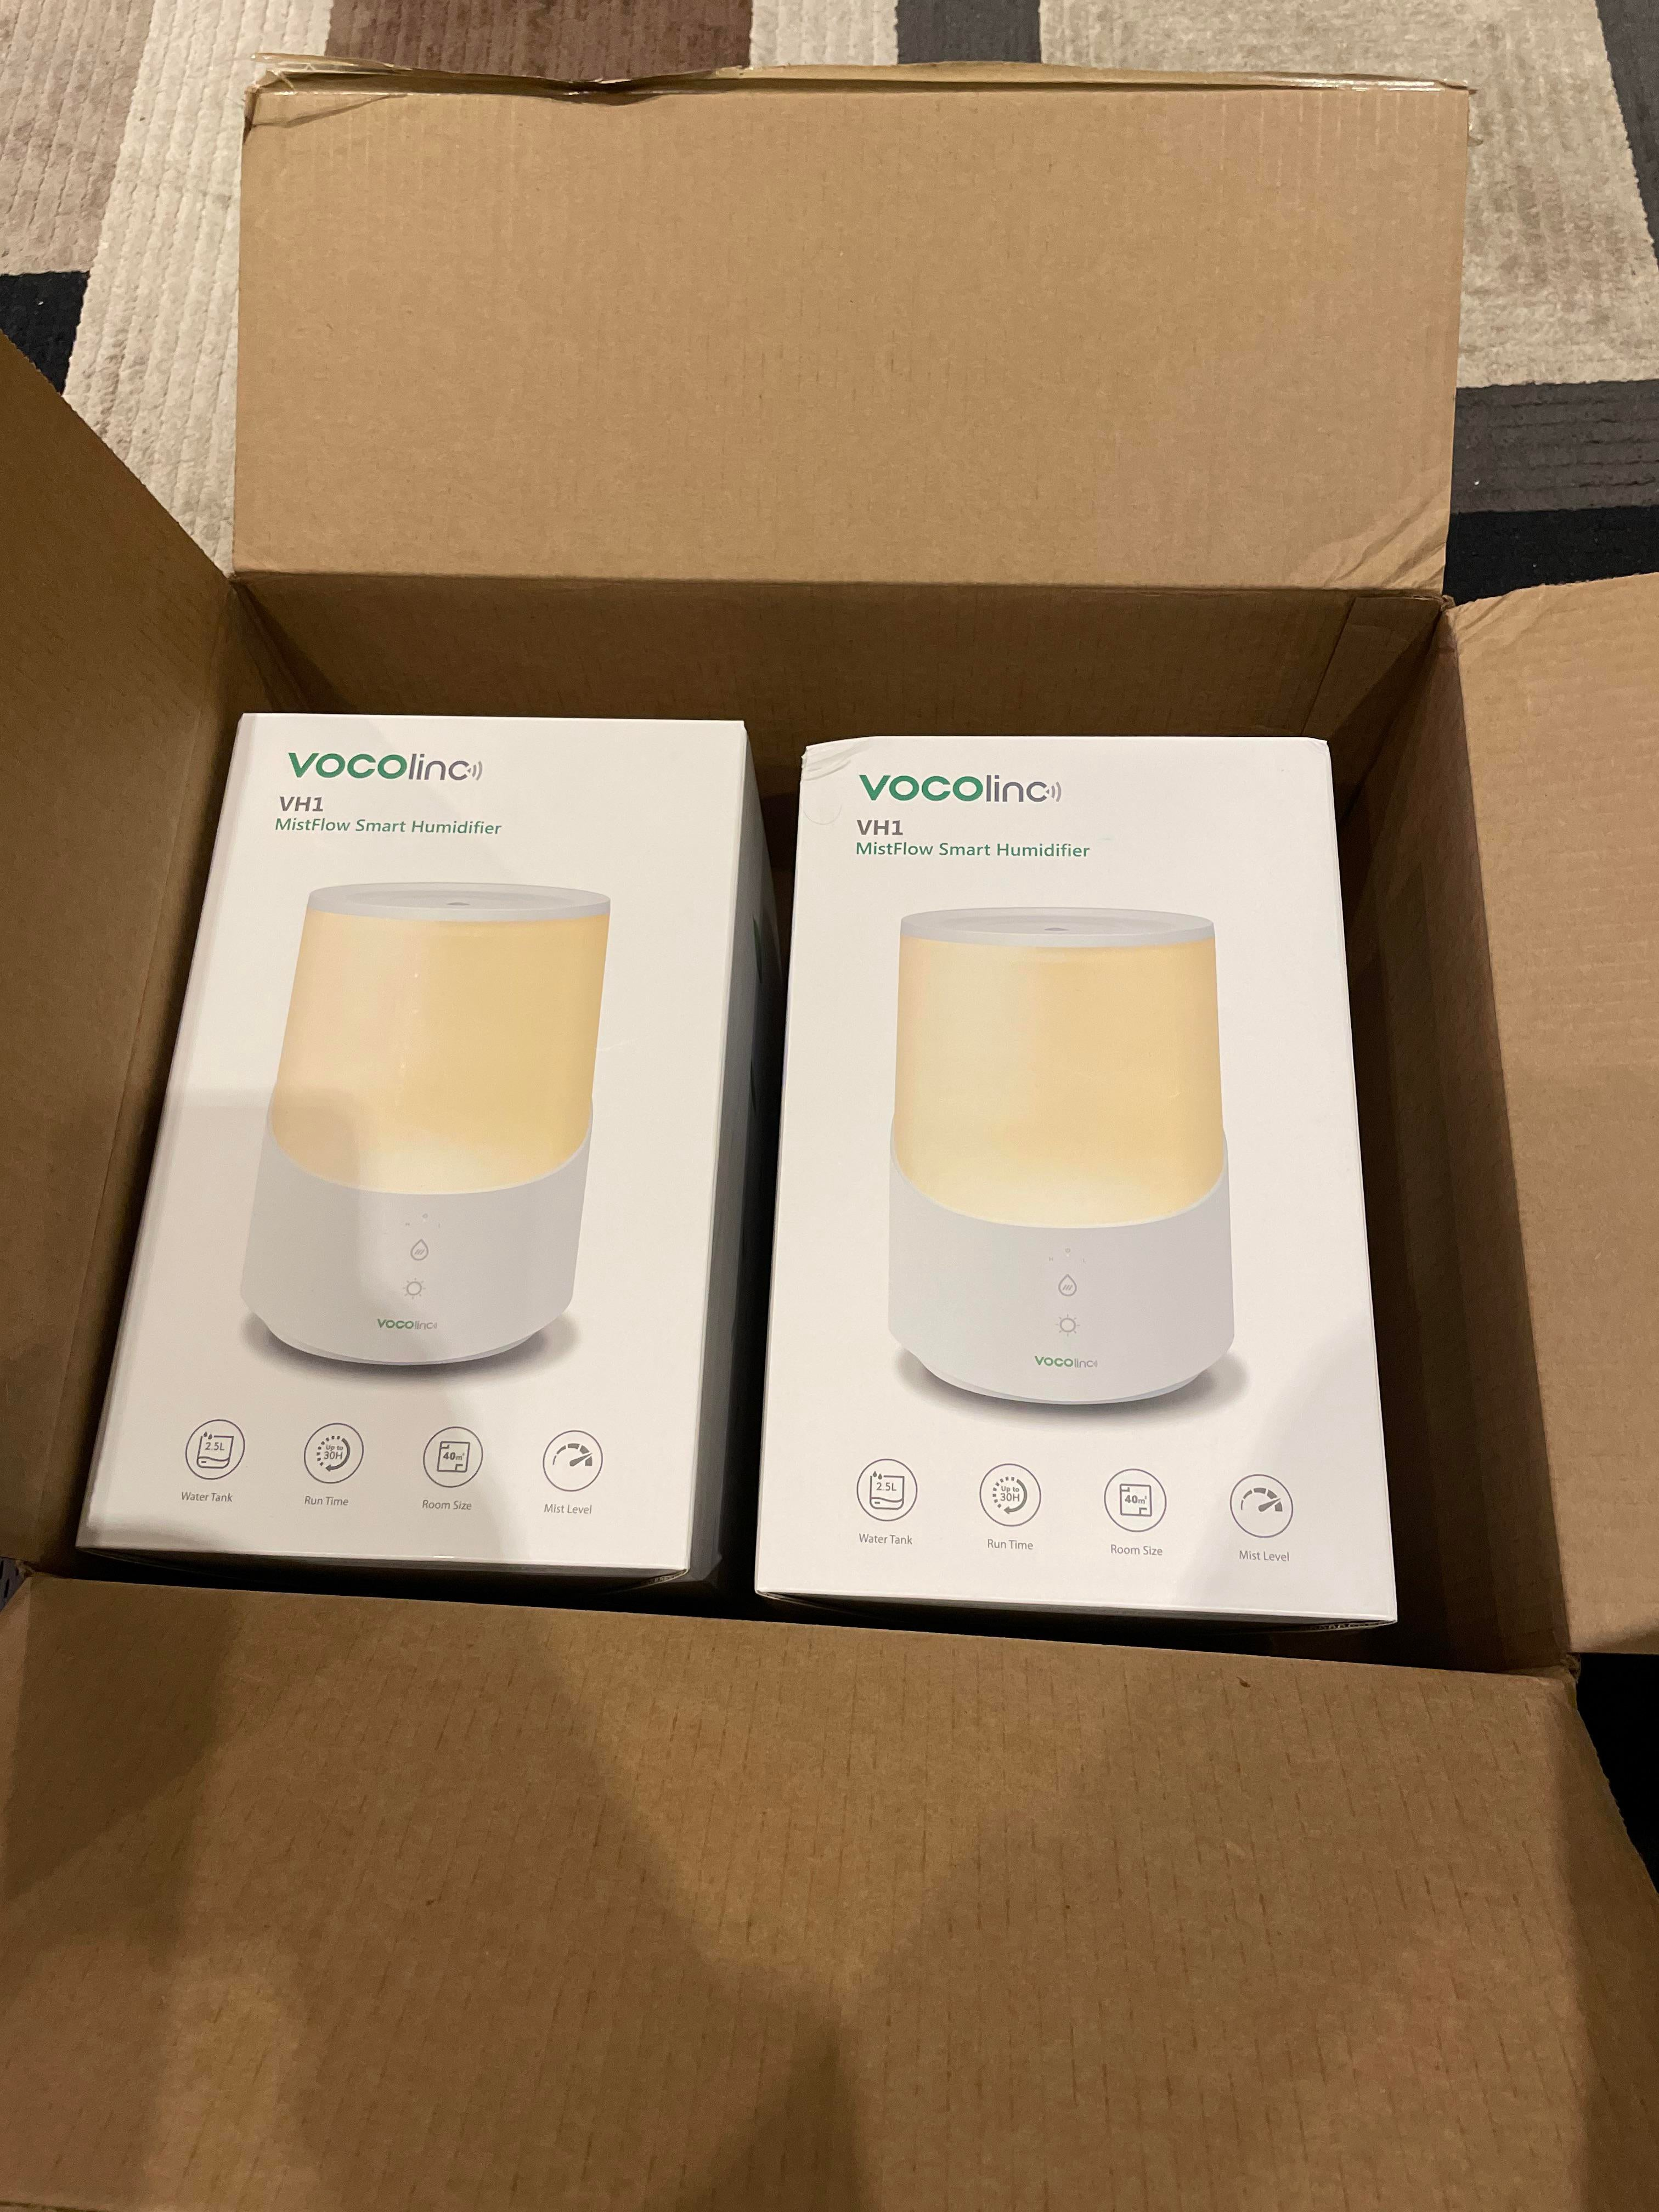 Vocolinc humidifiers have arrived